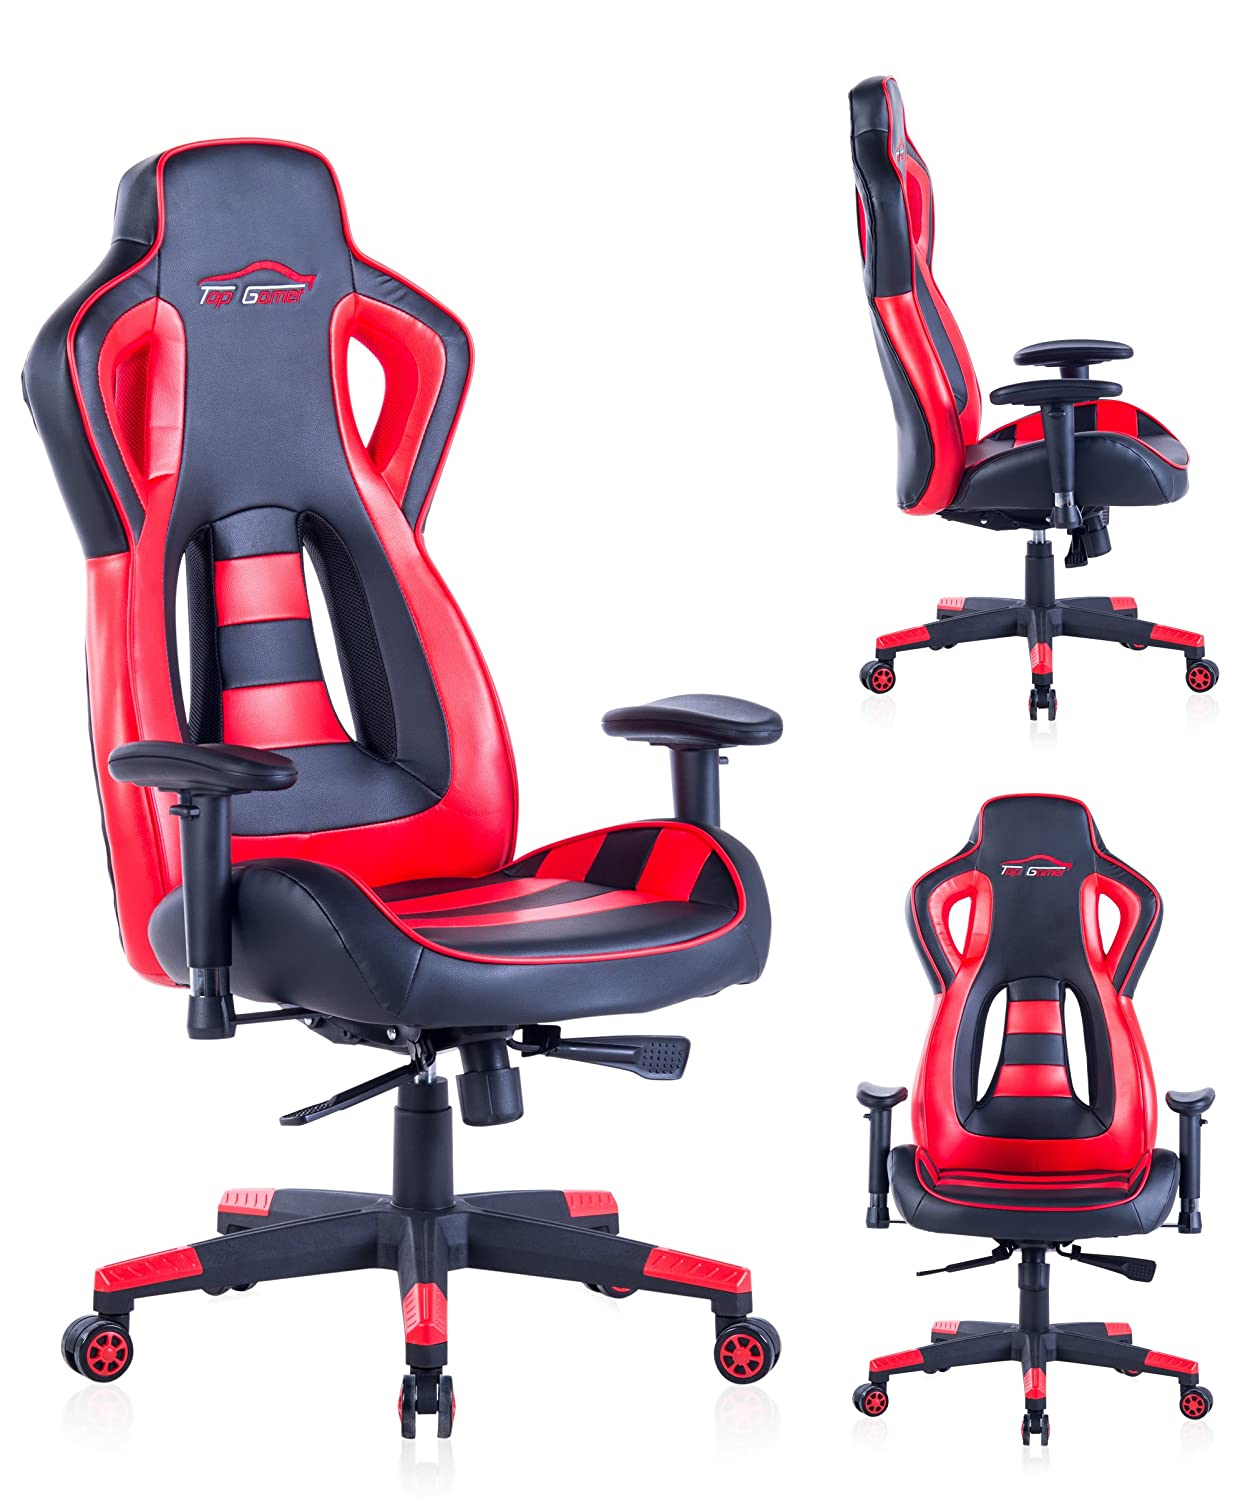 Business Office Industrial Supplies Office Chairs Intey Ergonomic Office Gaming High Back Mesh Chair Adjustable Headrest Armrest Constructoramyv Cl